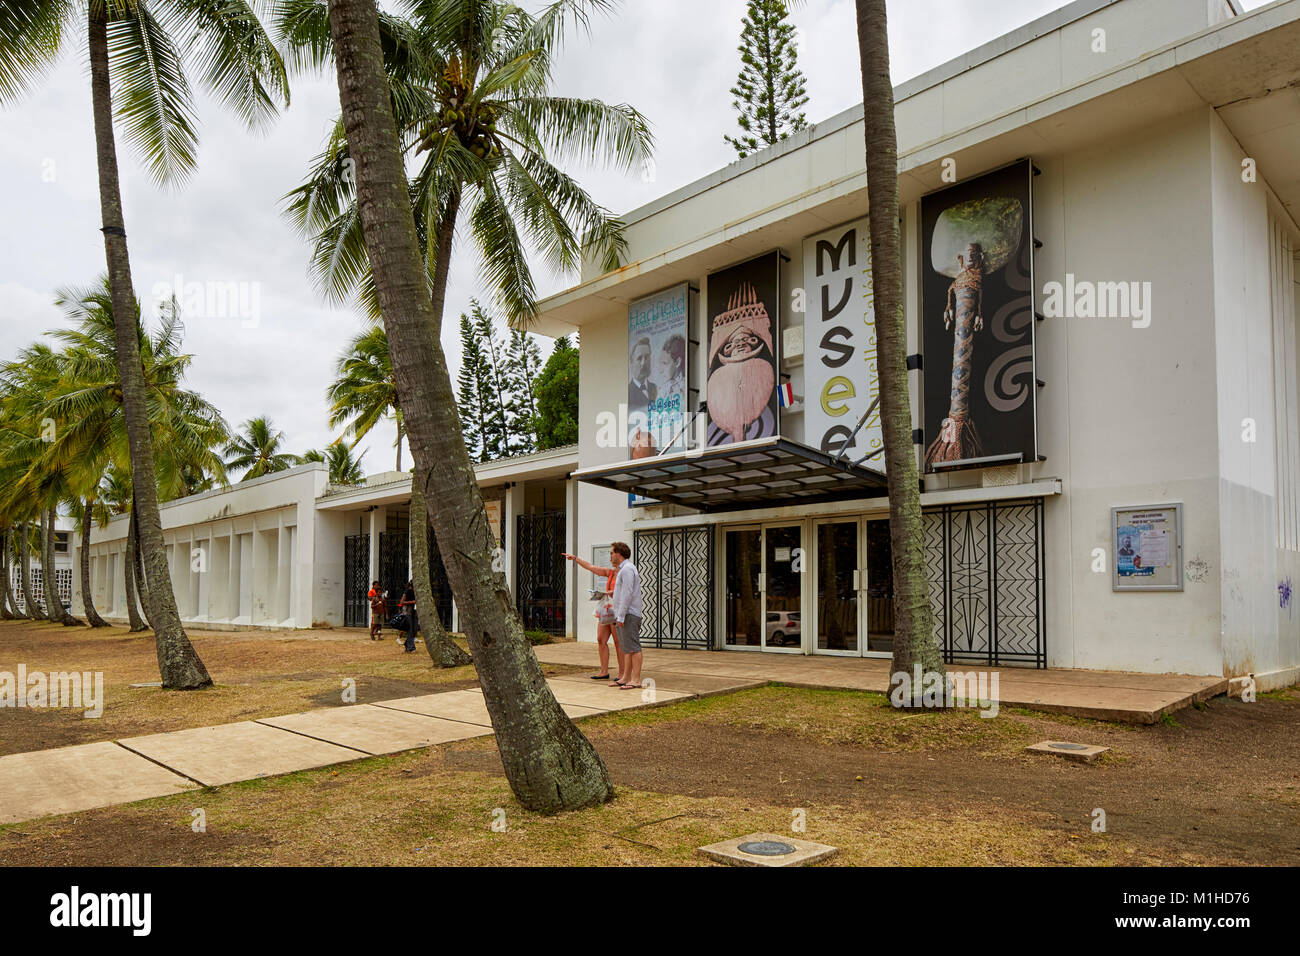 Museum of New Caledonia, Noumea, Nouvelle-Caledonie - Stock Image